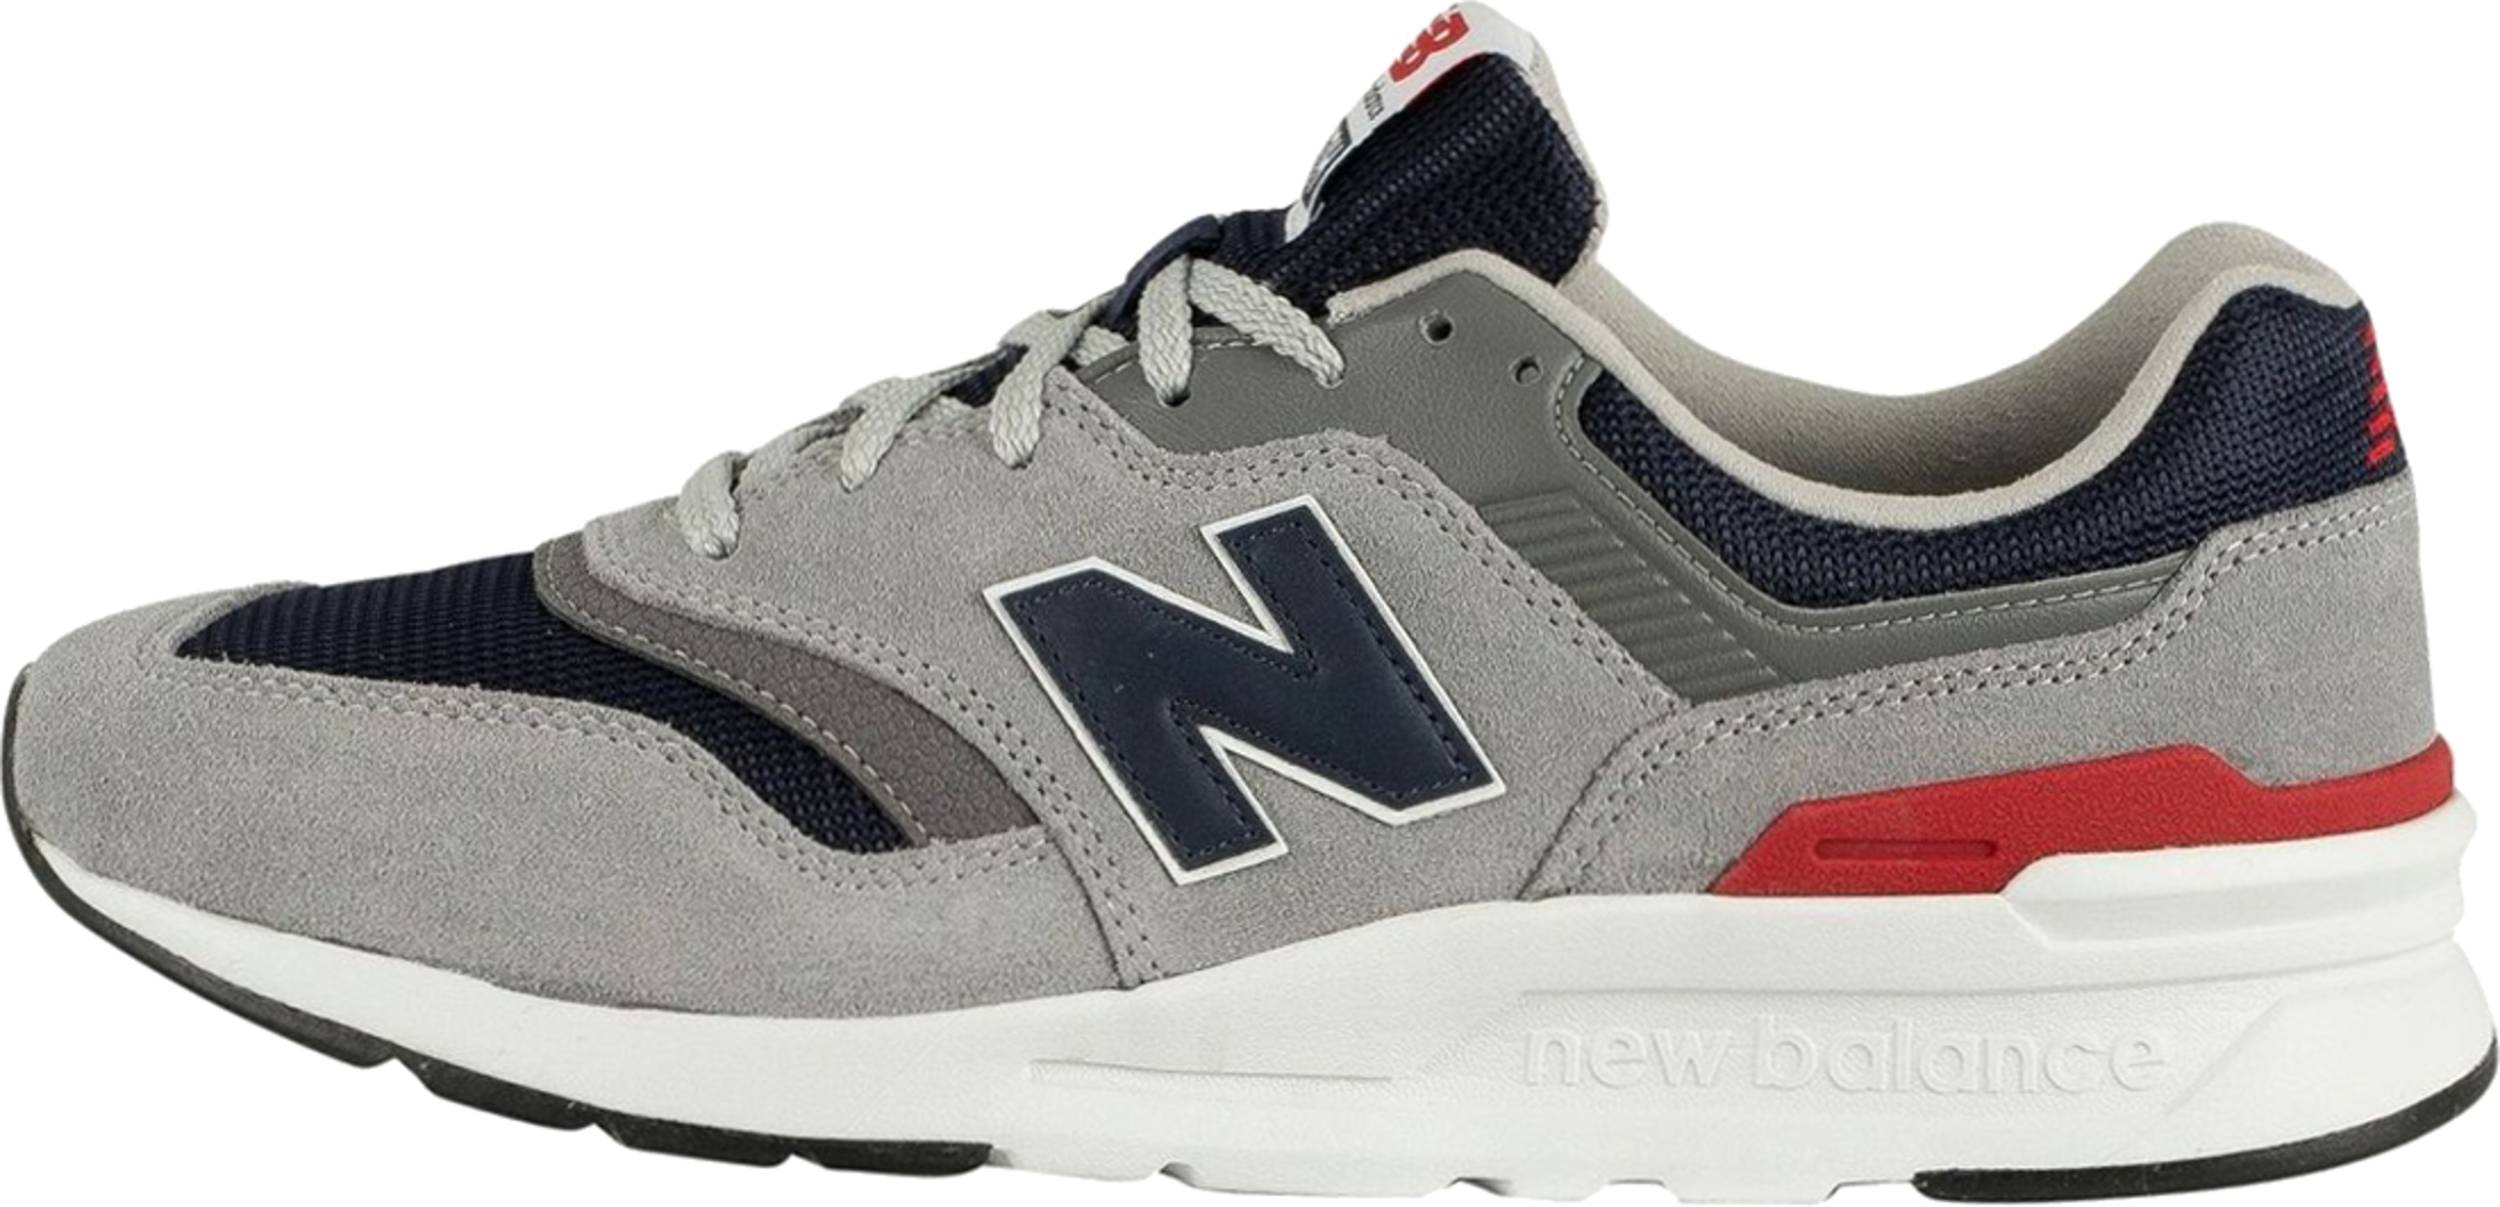 New Balance 997 sneakers in 5 colors (only $139) | RunRepeat